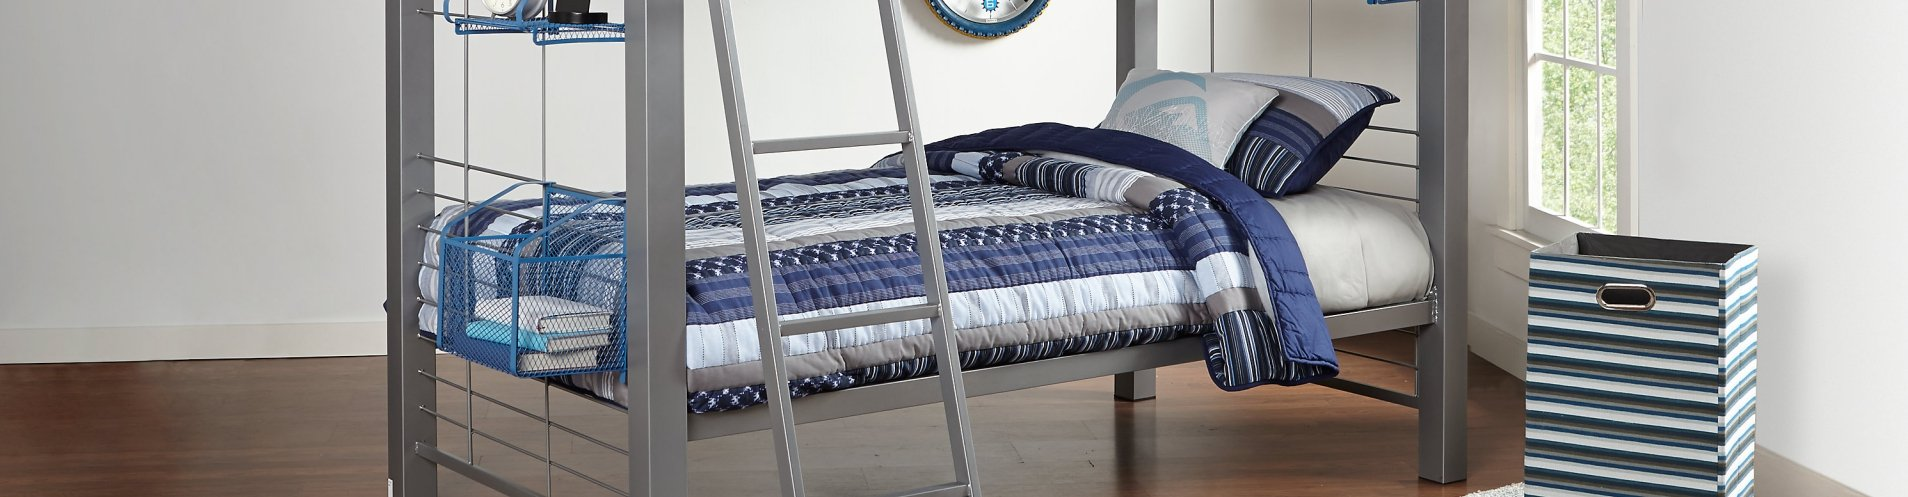 Best Twin Mattresses Reviewed in Detail